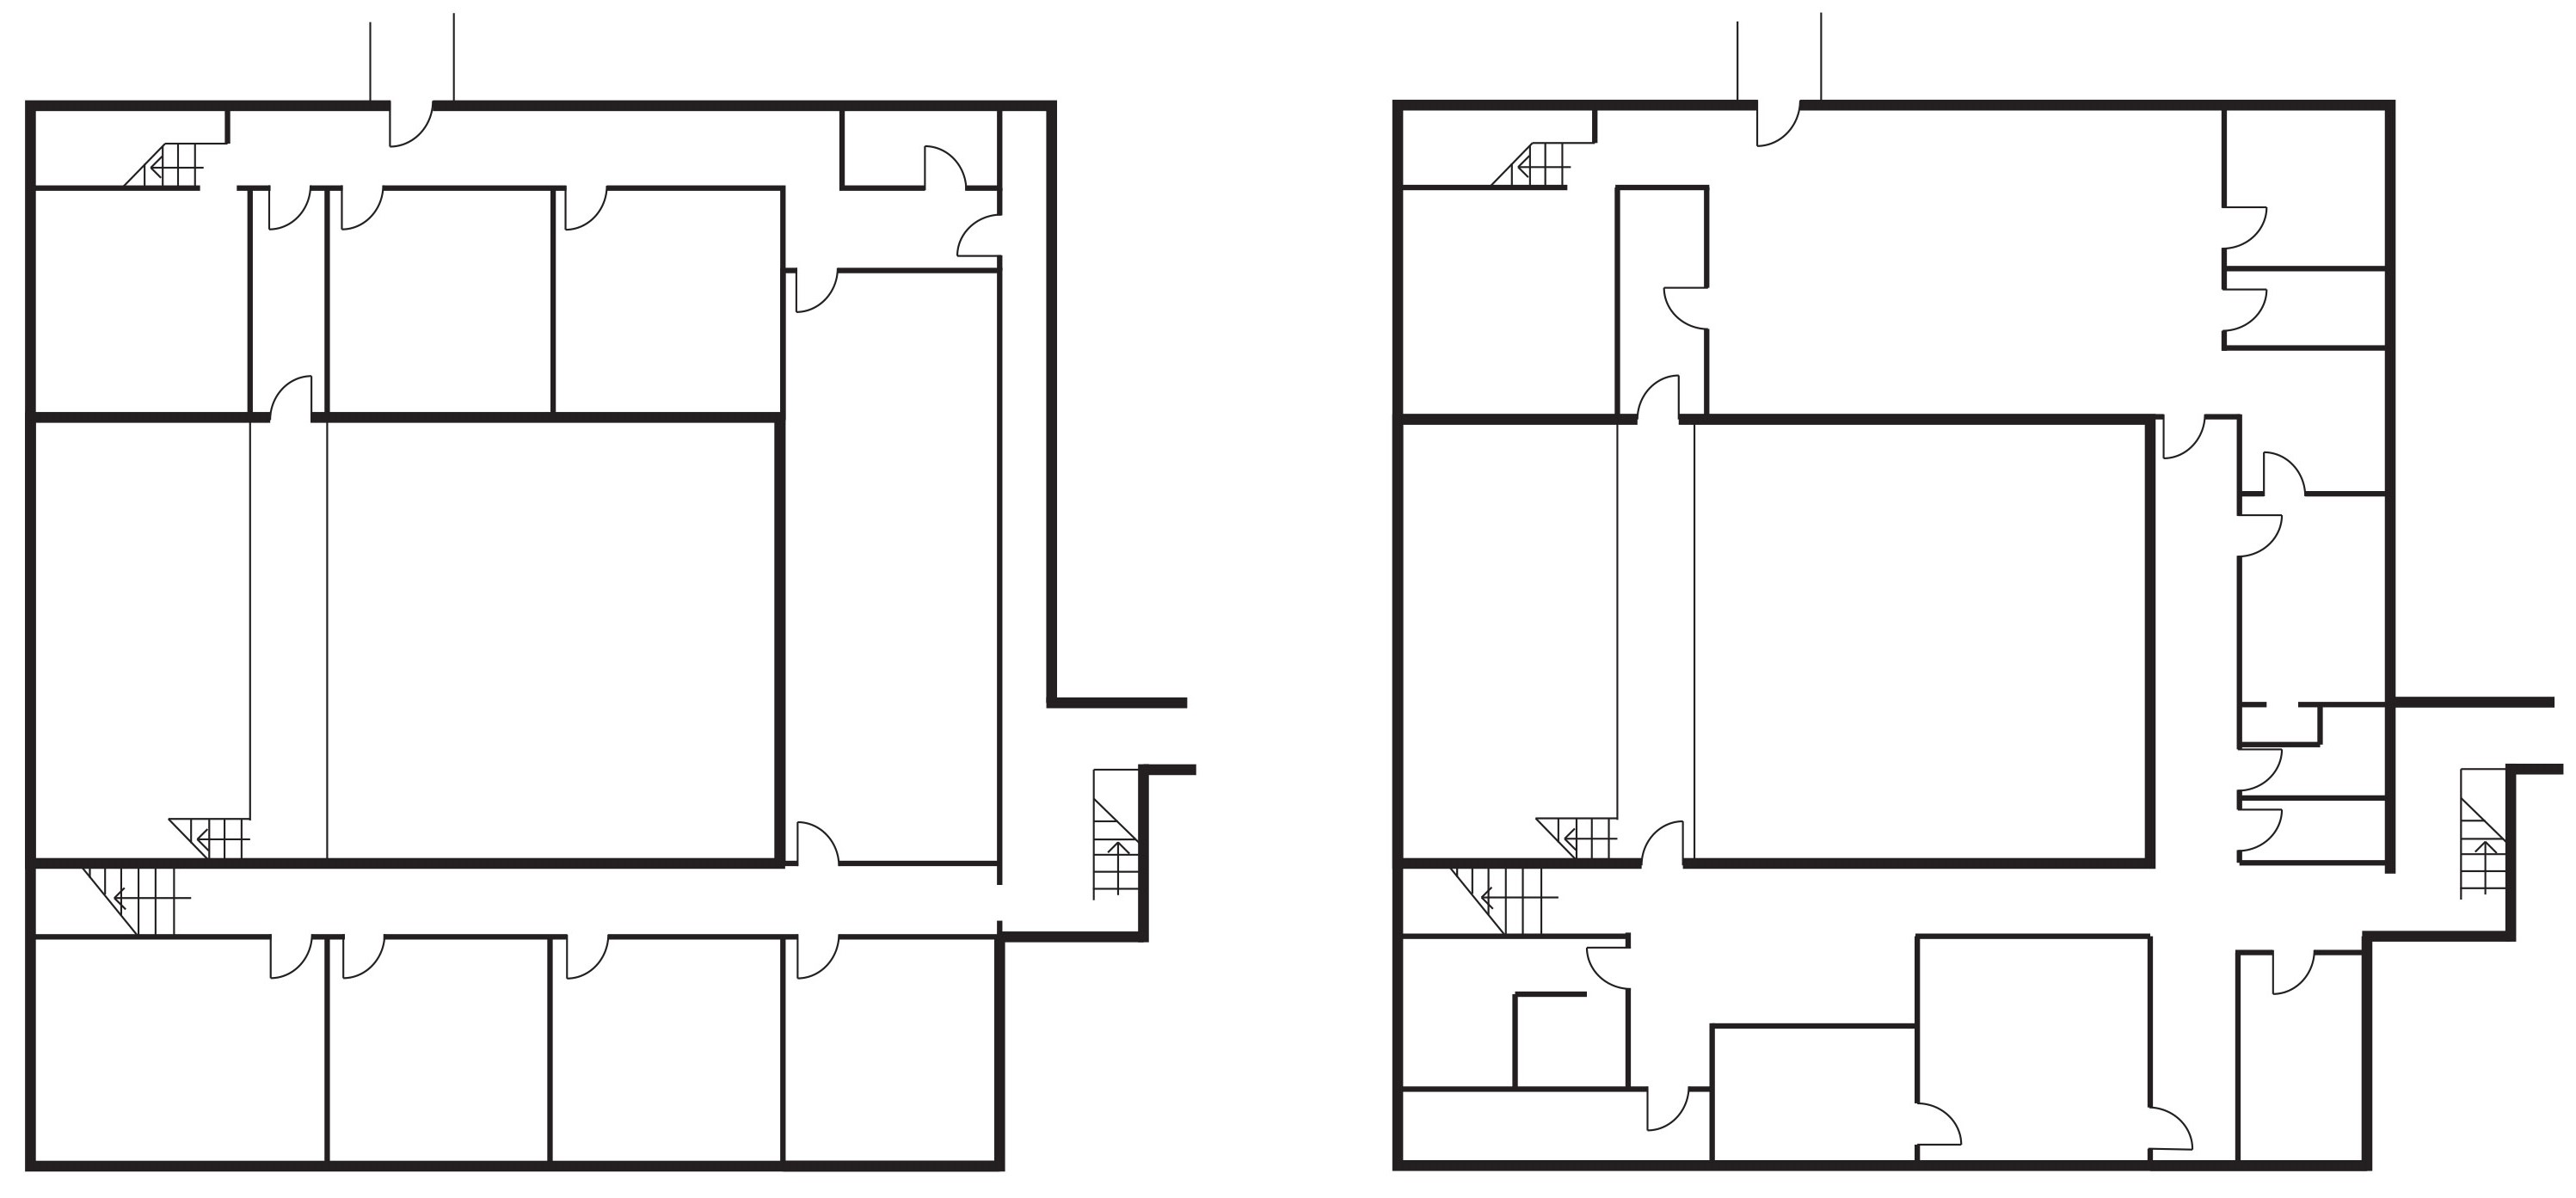 Simple file floor plans of sacred heart wikimedia commons pics of plans frequently even as the